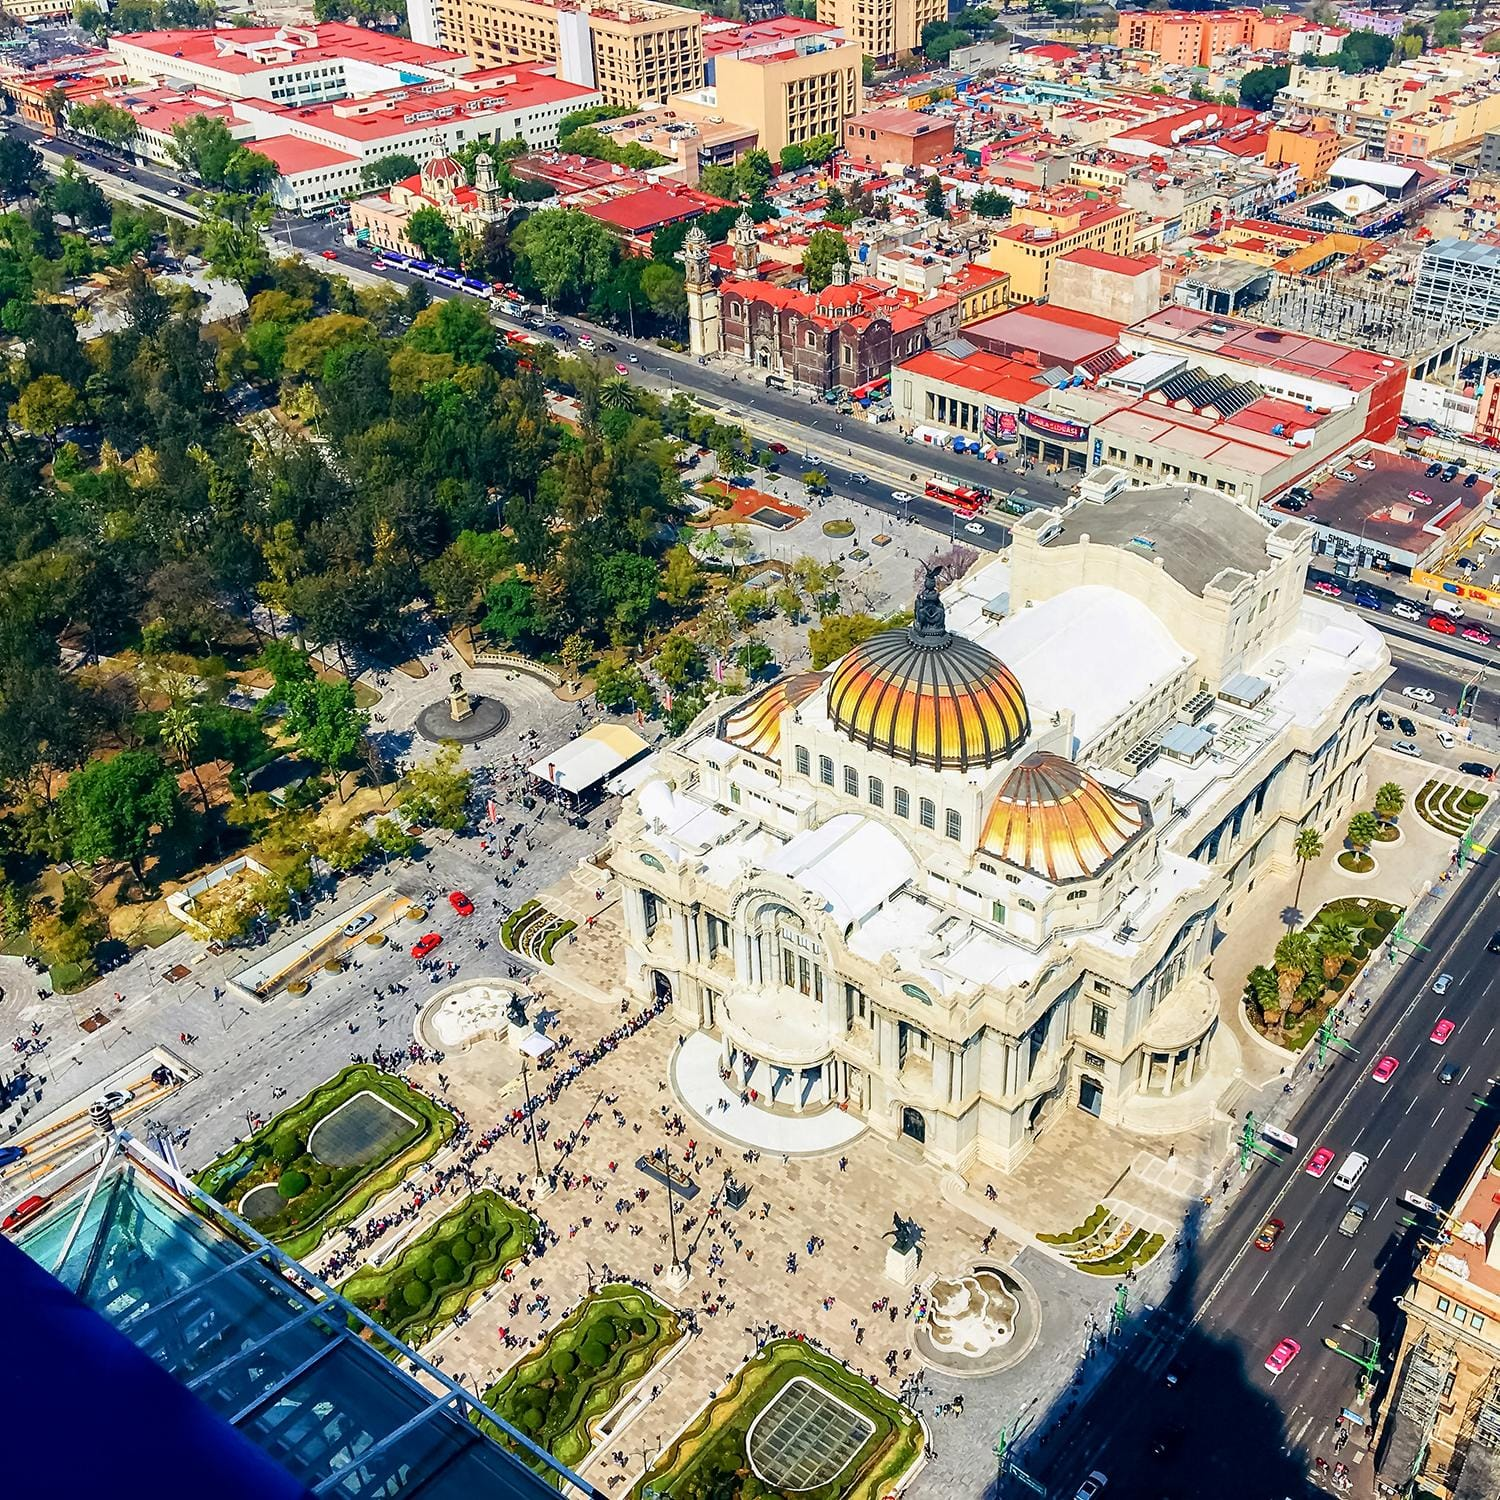 12_BeachHoneymoon__MexicoCity_12.2.) manuel-arroyo-wc2jsFOBd3U-unsplash